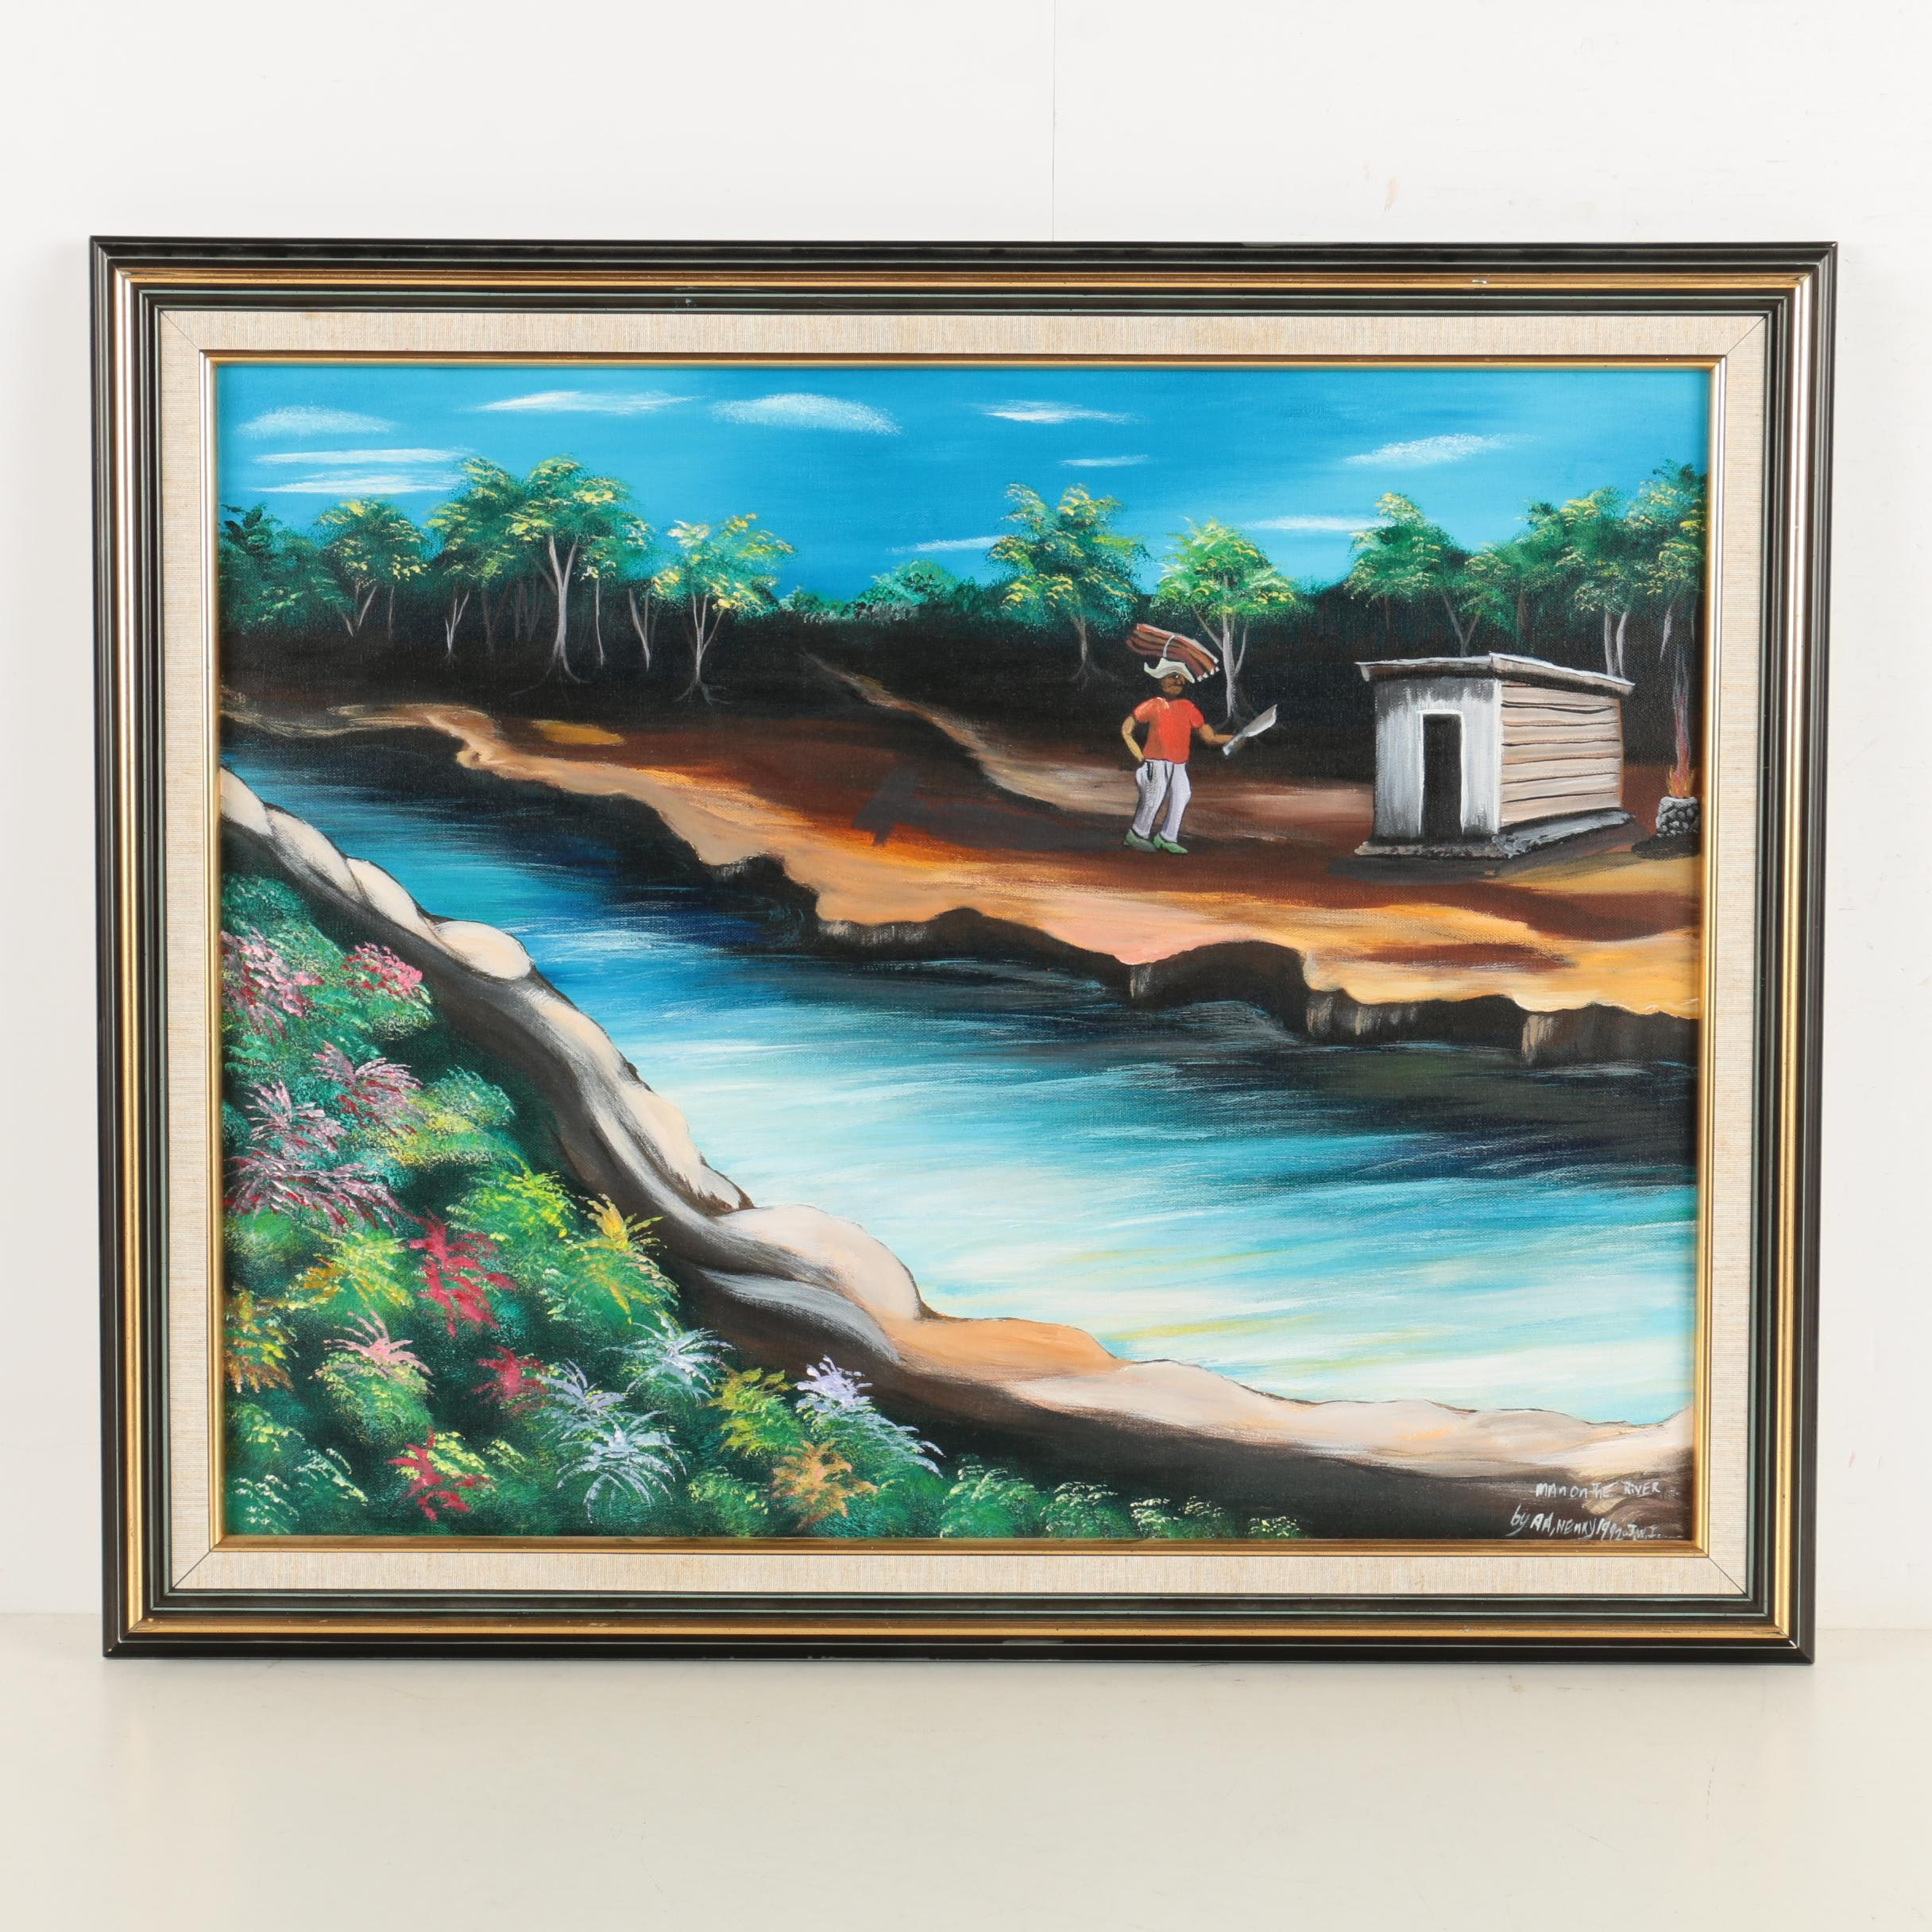 "A. A. Nenky 1992 Oil Painting on Canvas of Jamaican Landscape ""Man on the River"""